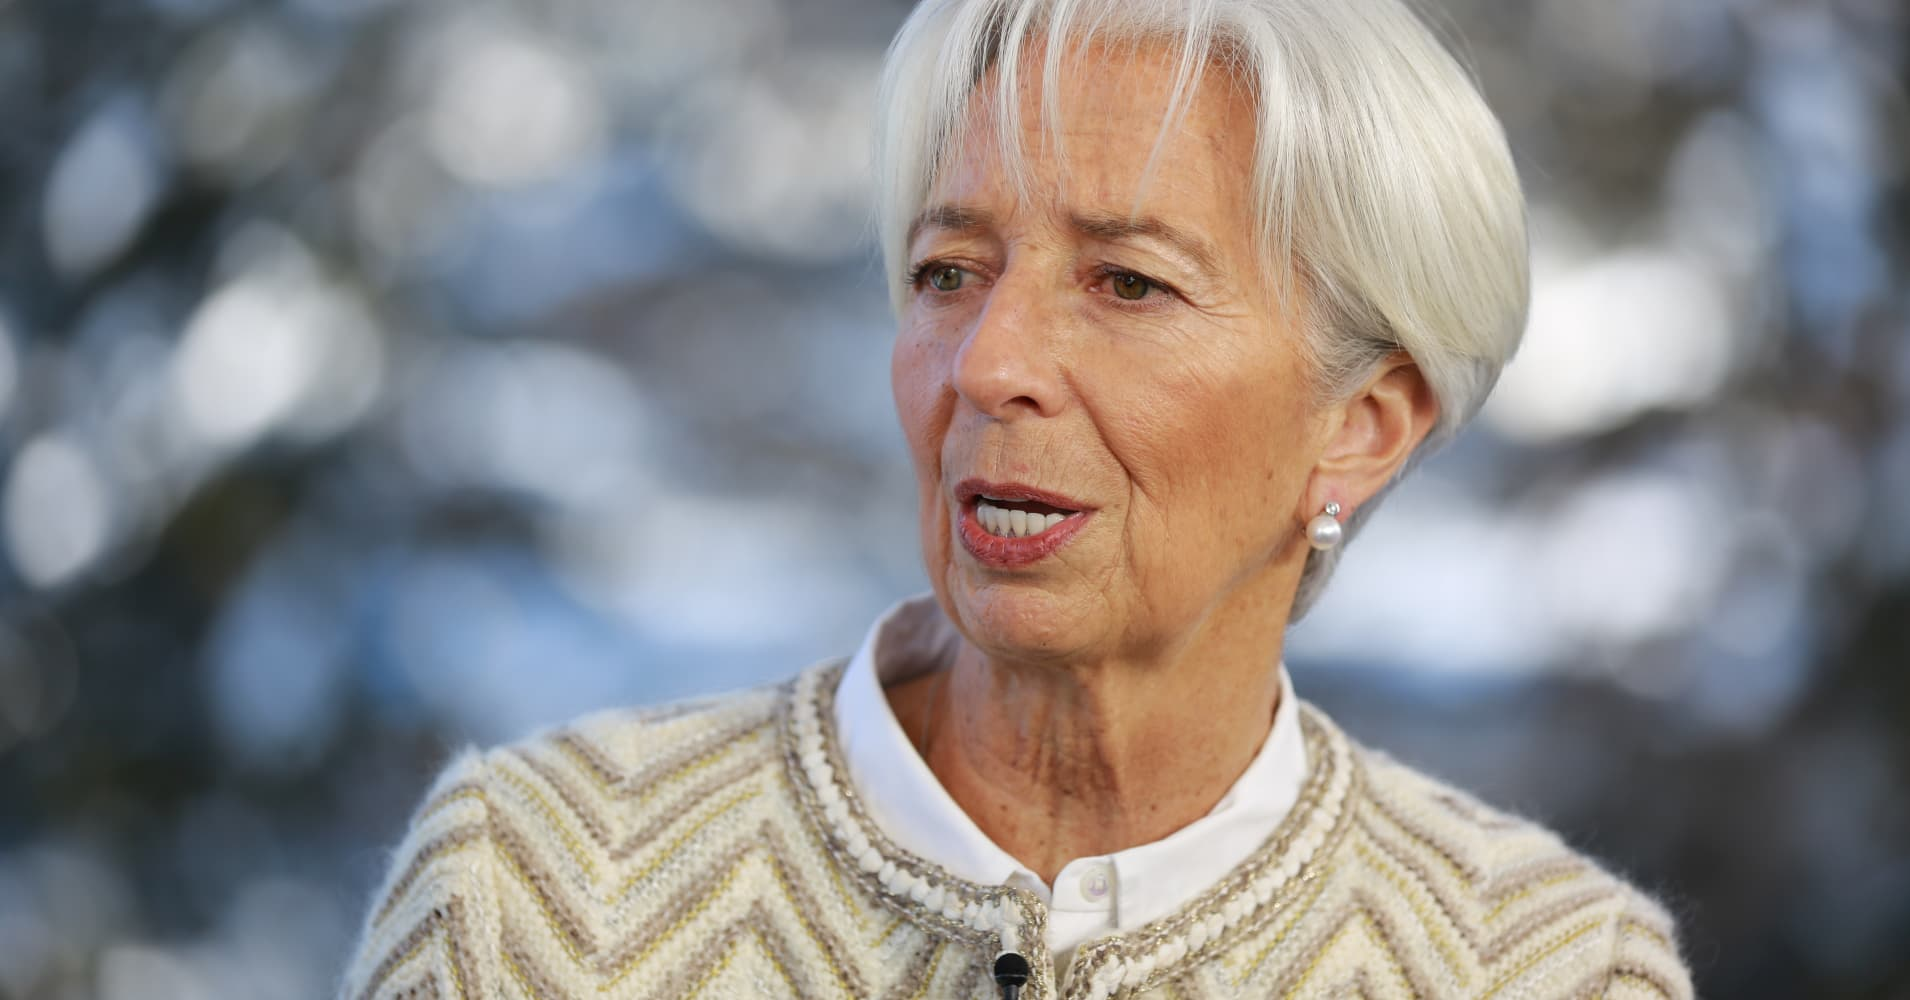 IMF Chair Christine Lagarde cuts global growth forecast for 2019 to 3.5 percent